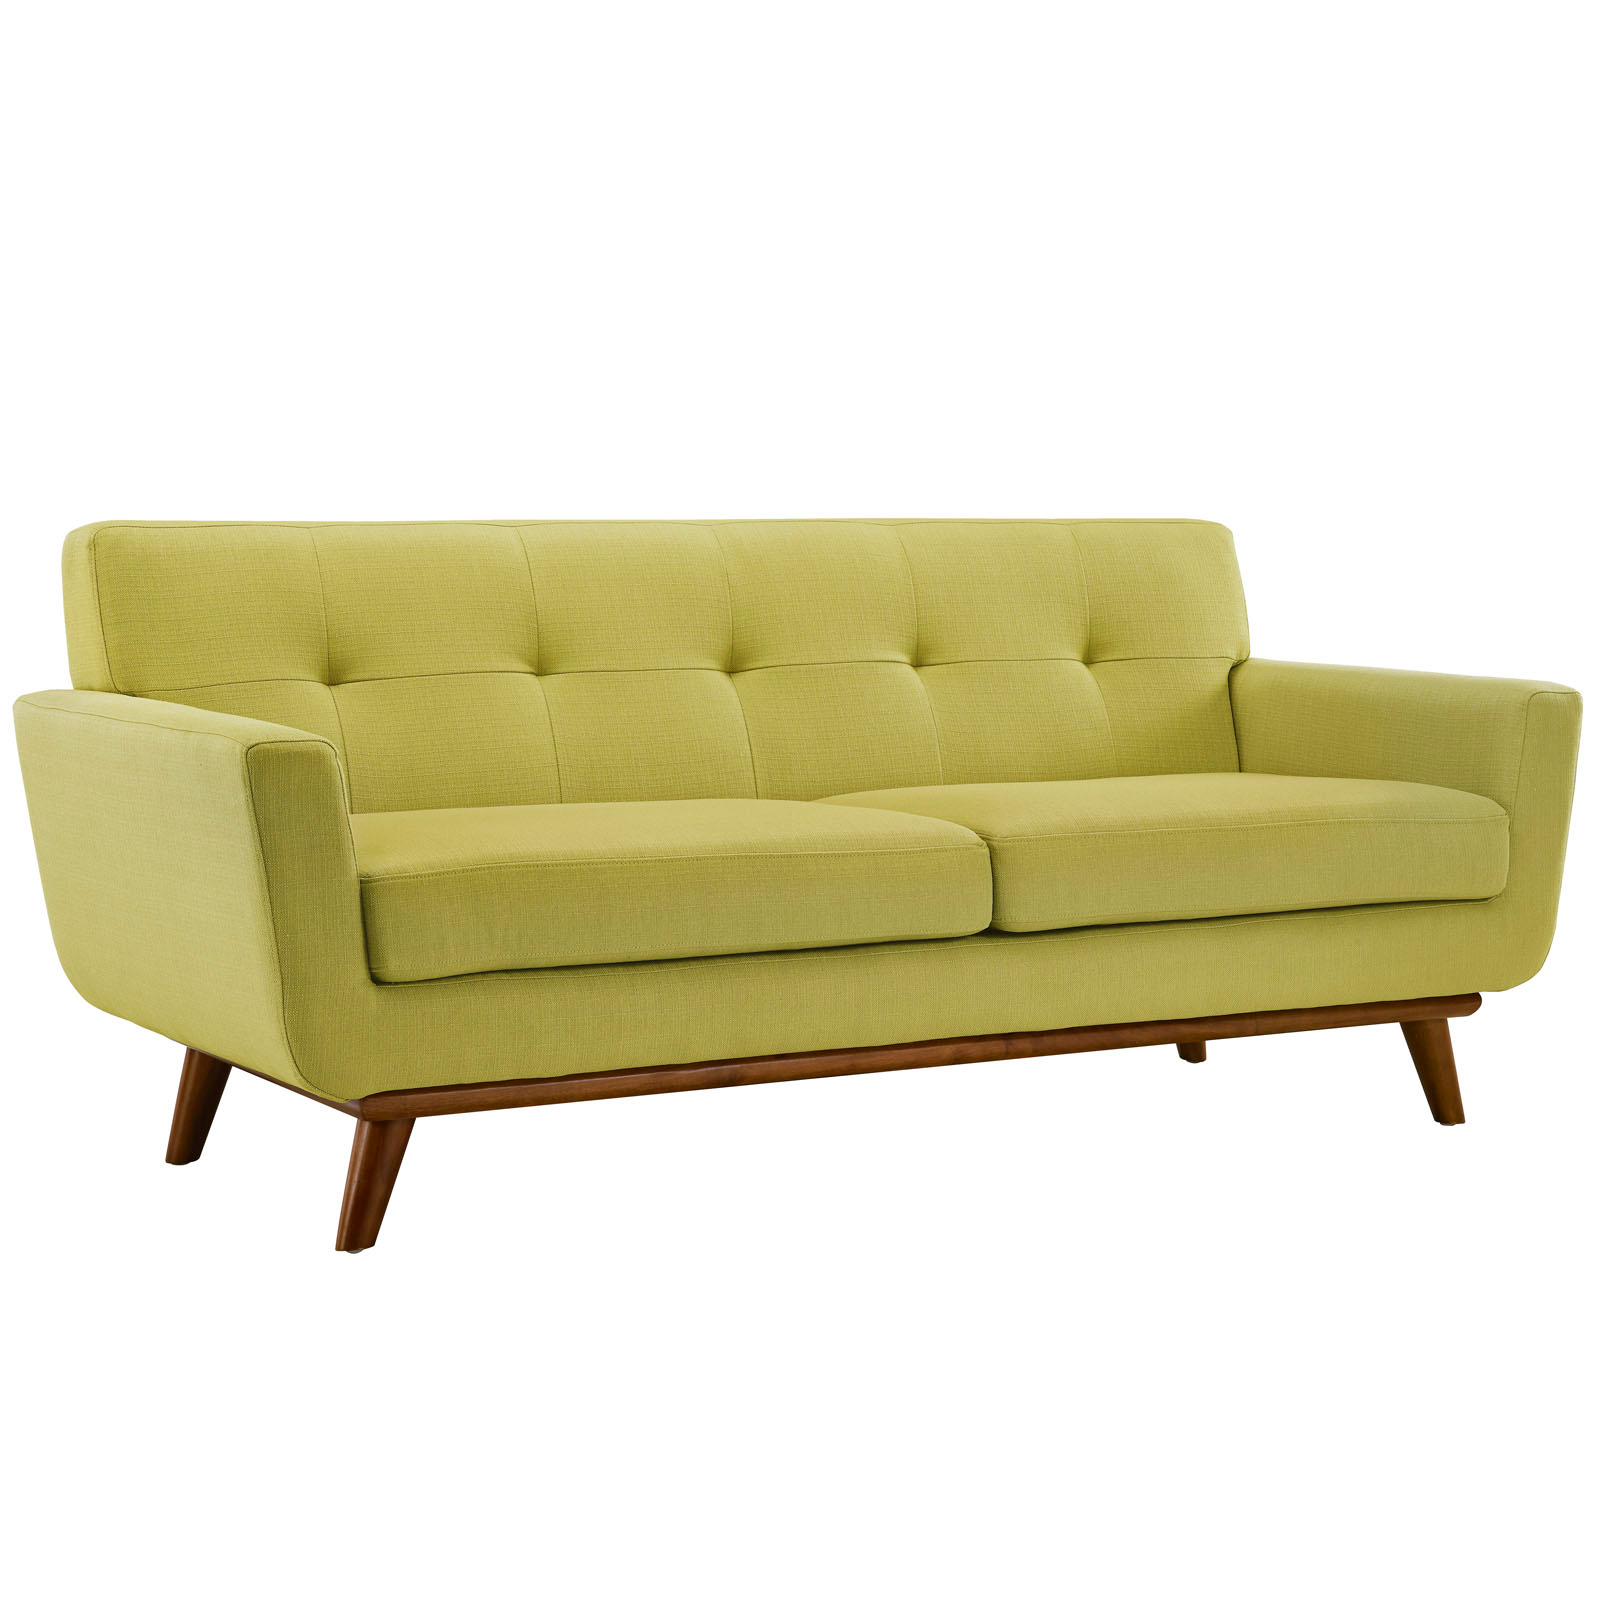 Empire Wheatgrass Modern Loveseat